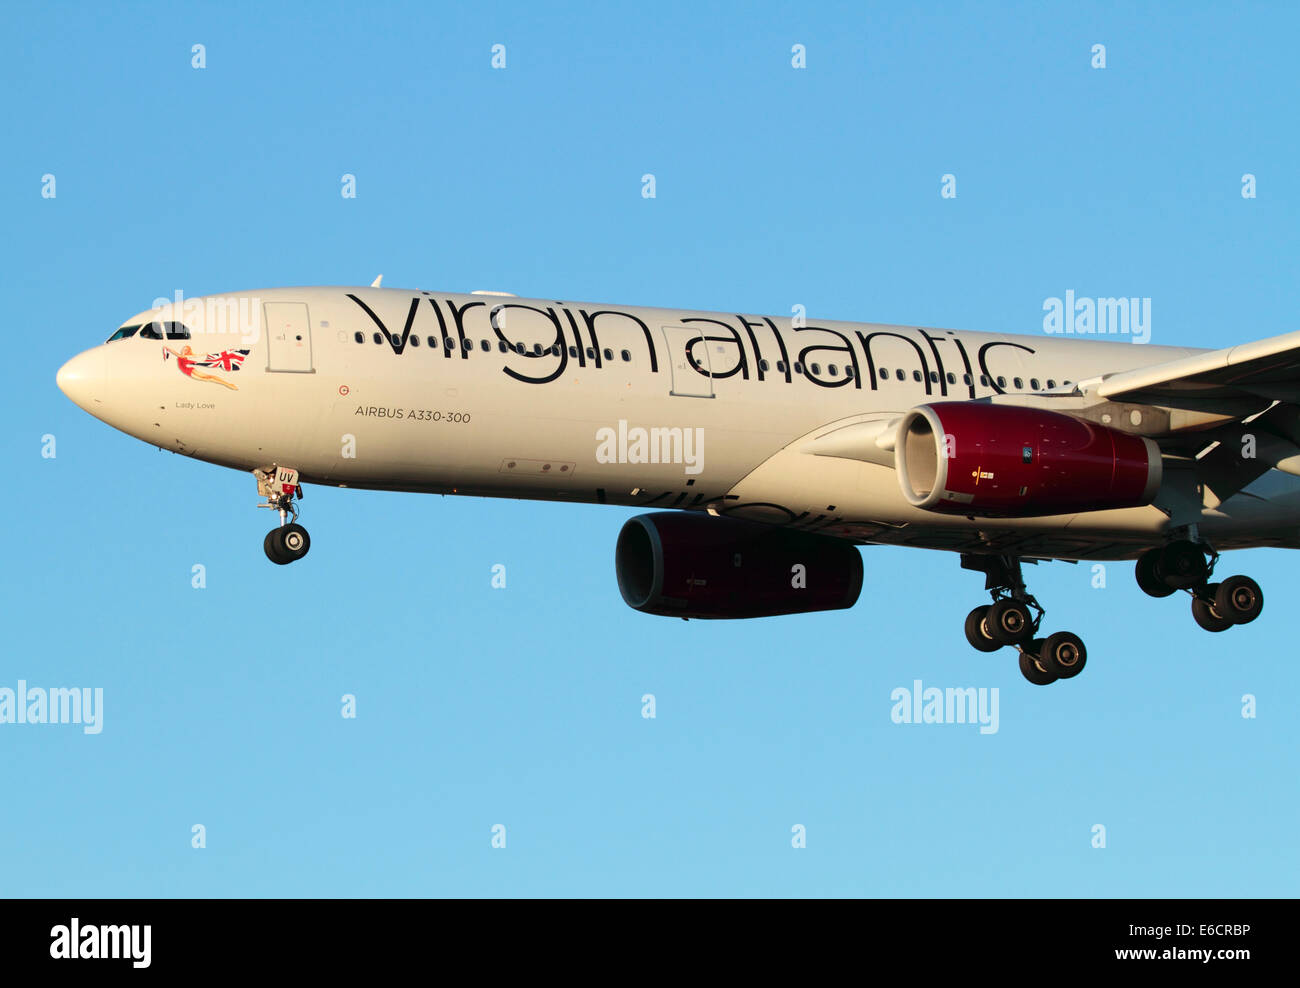 Virgin Atlantic Airways Airbus A330-300 long haul aircraft on final approach at sunset. Close-up of front section - Stock Image